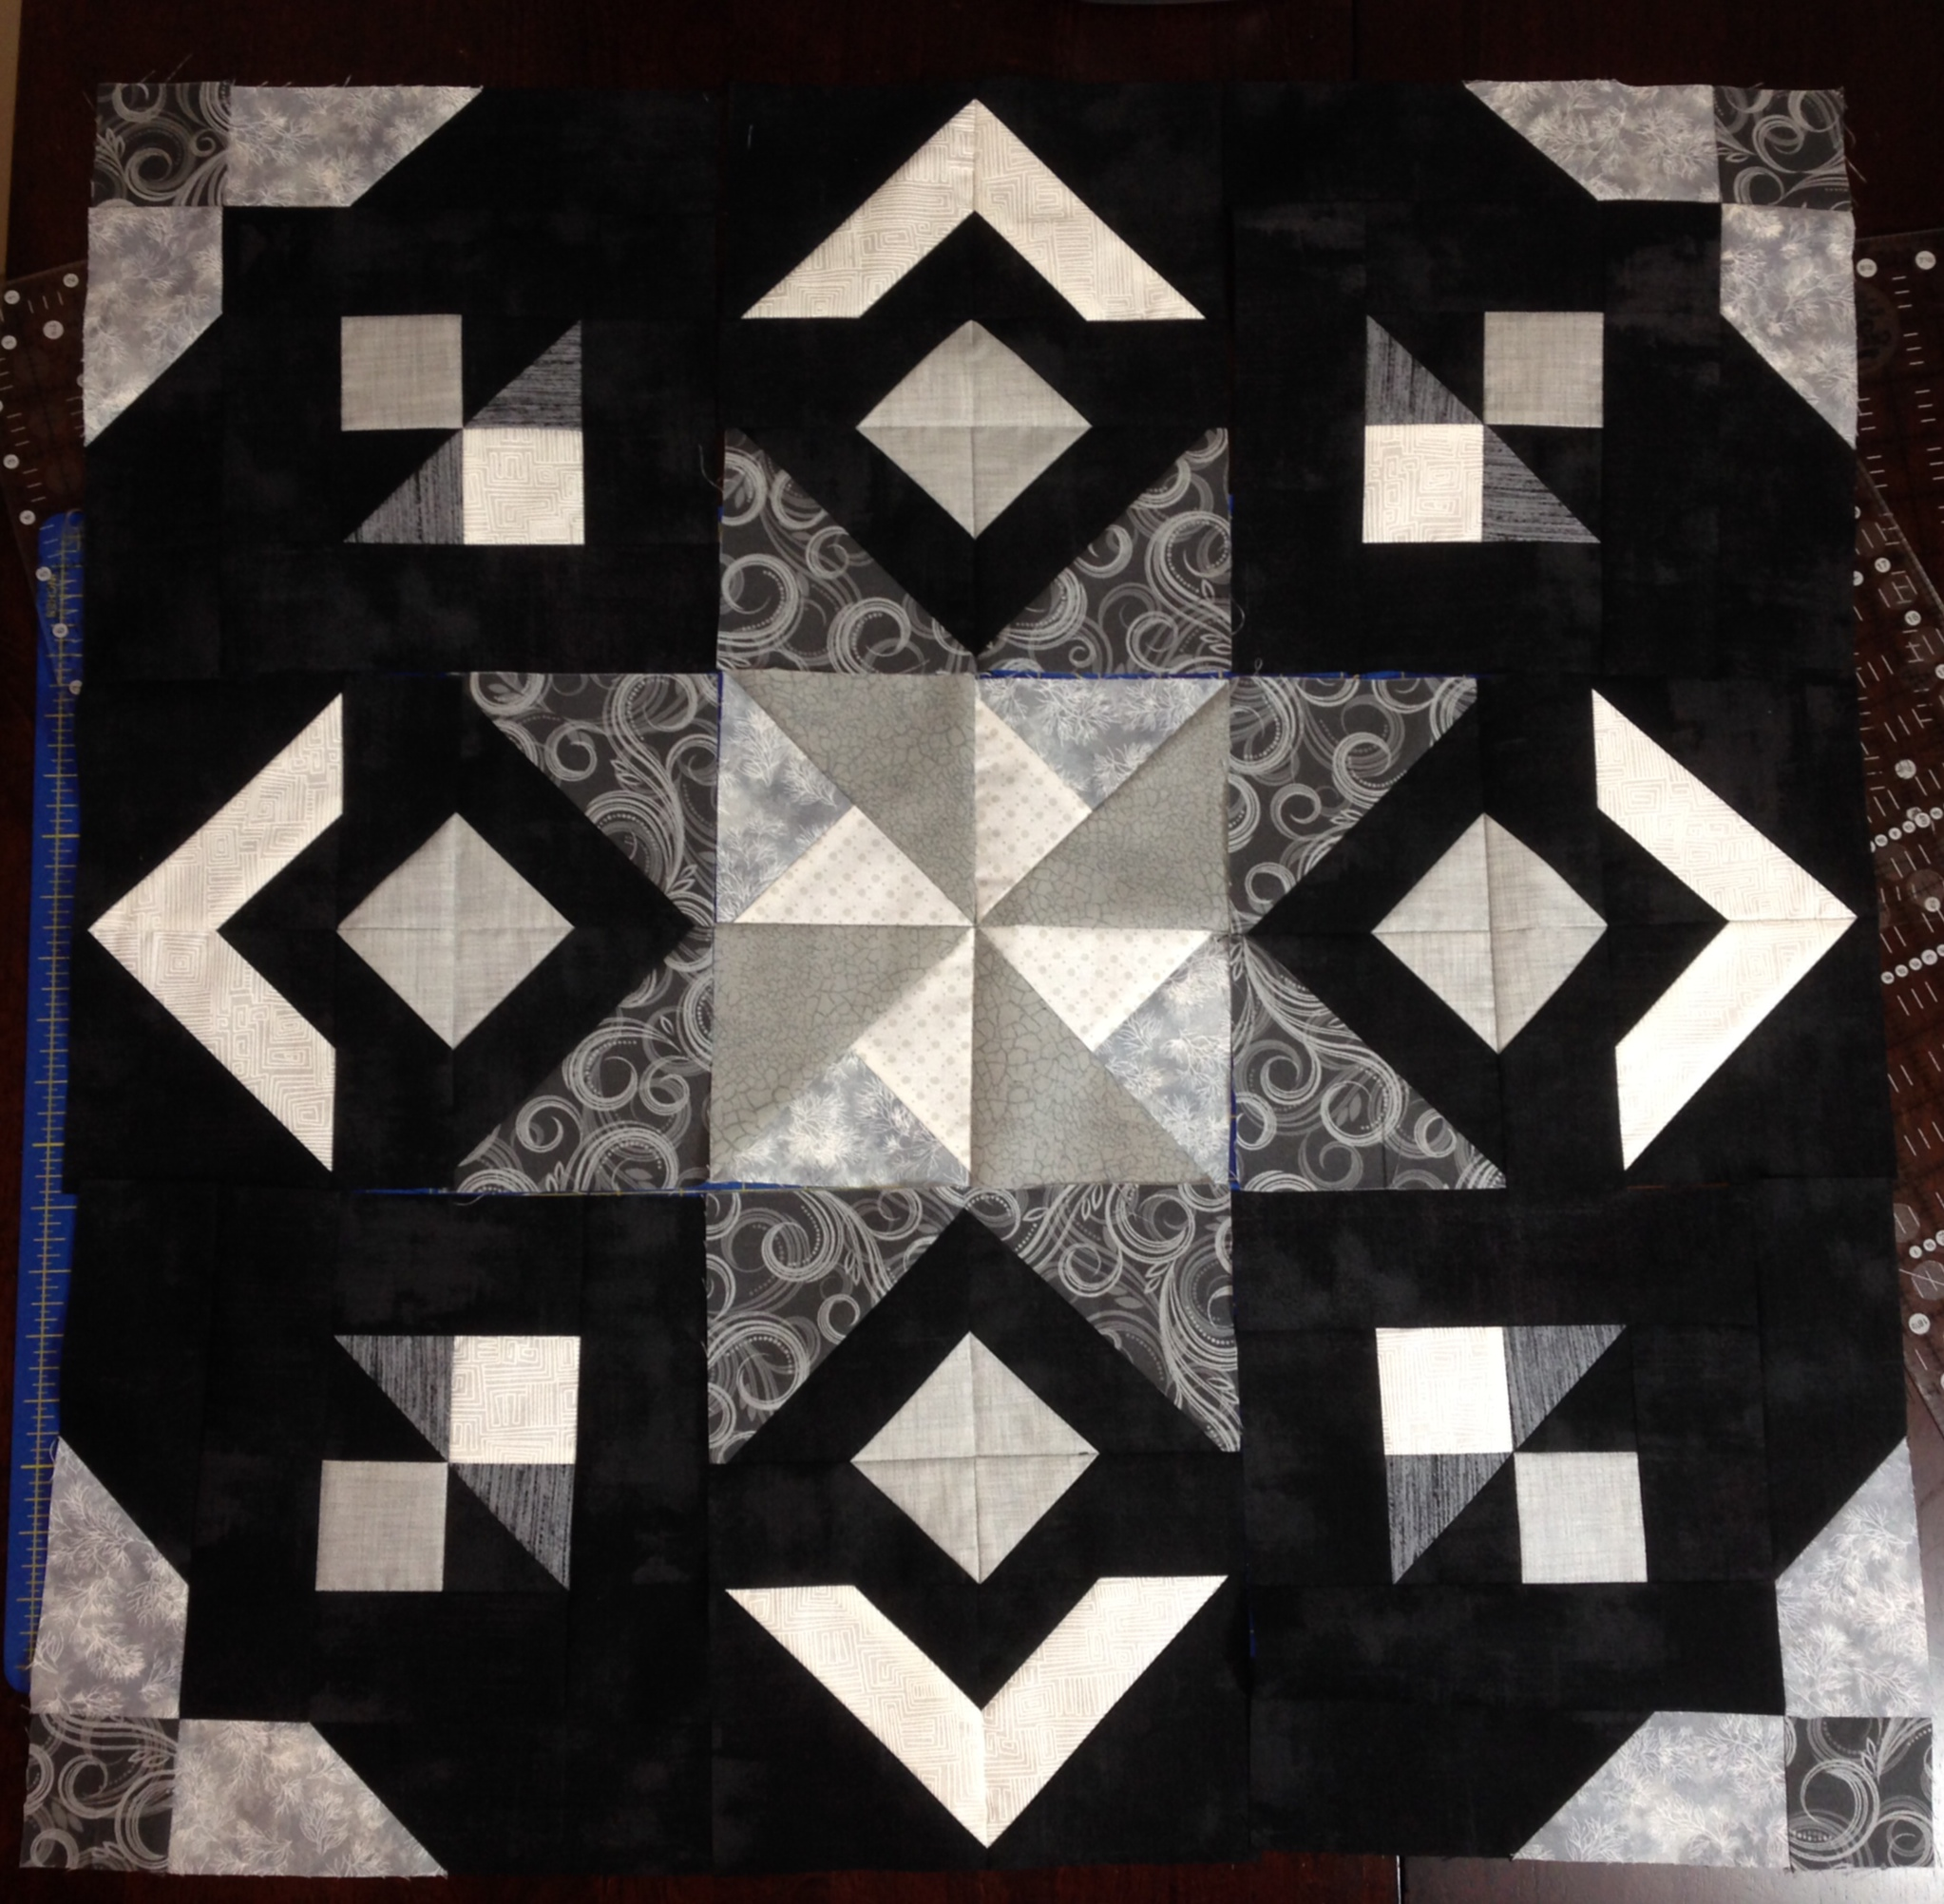 quilt quotations cheap piece shopping black king set get faith and find white guides patterns